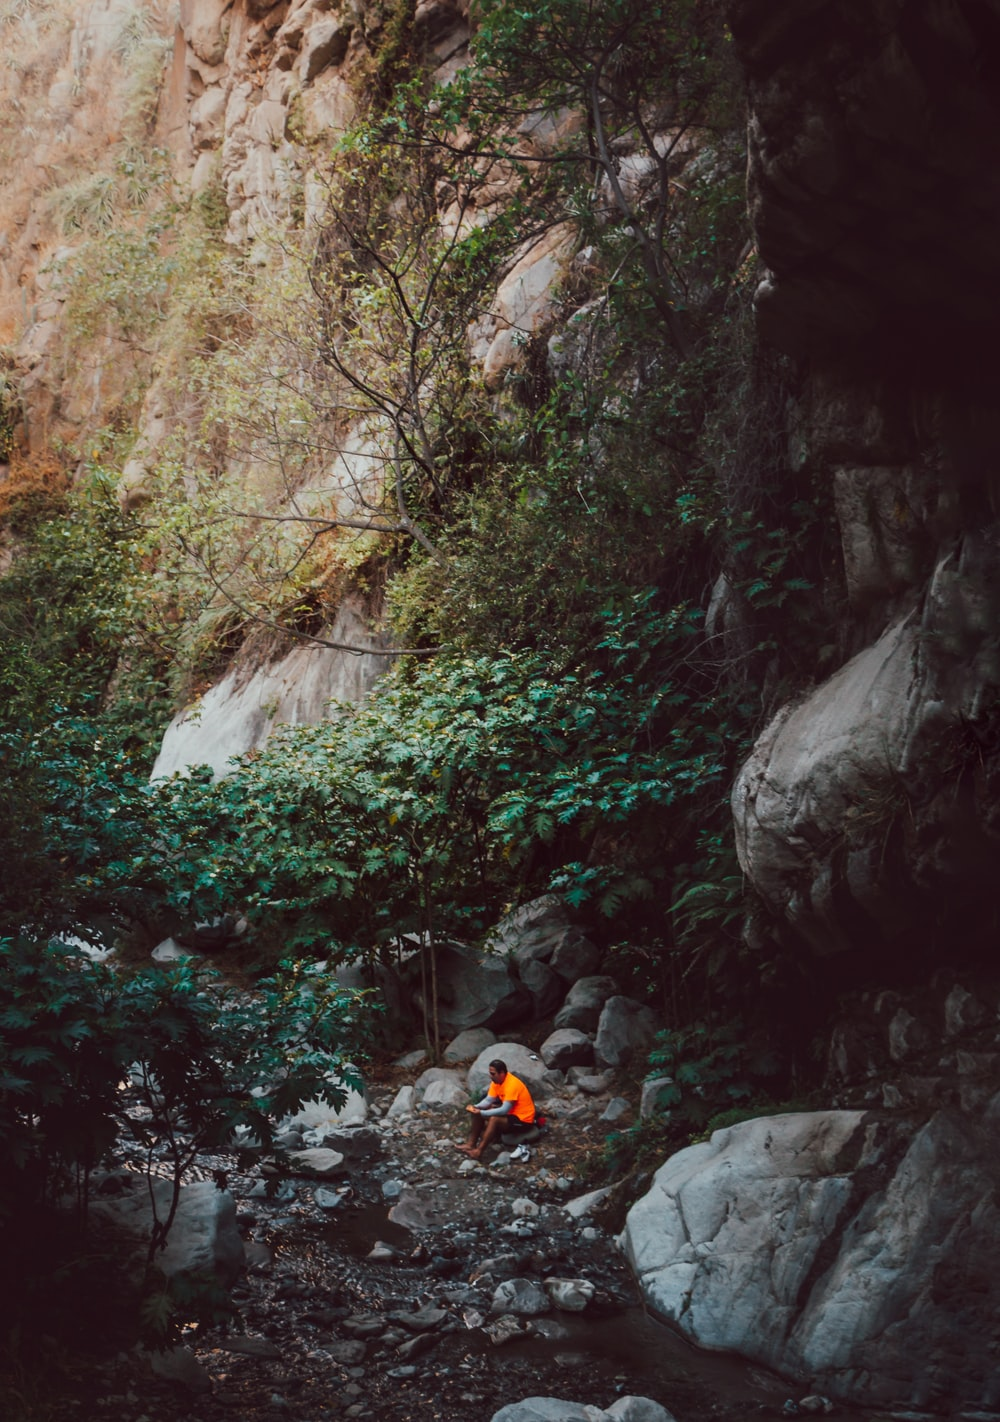 person sitting near a cave during daytime